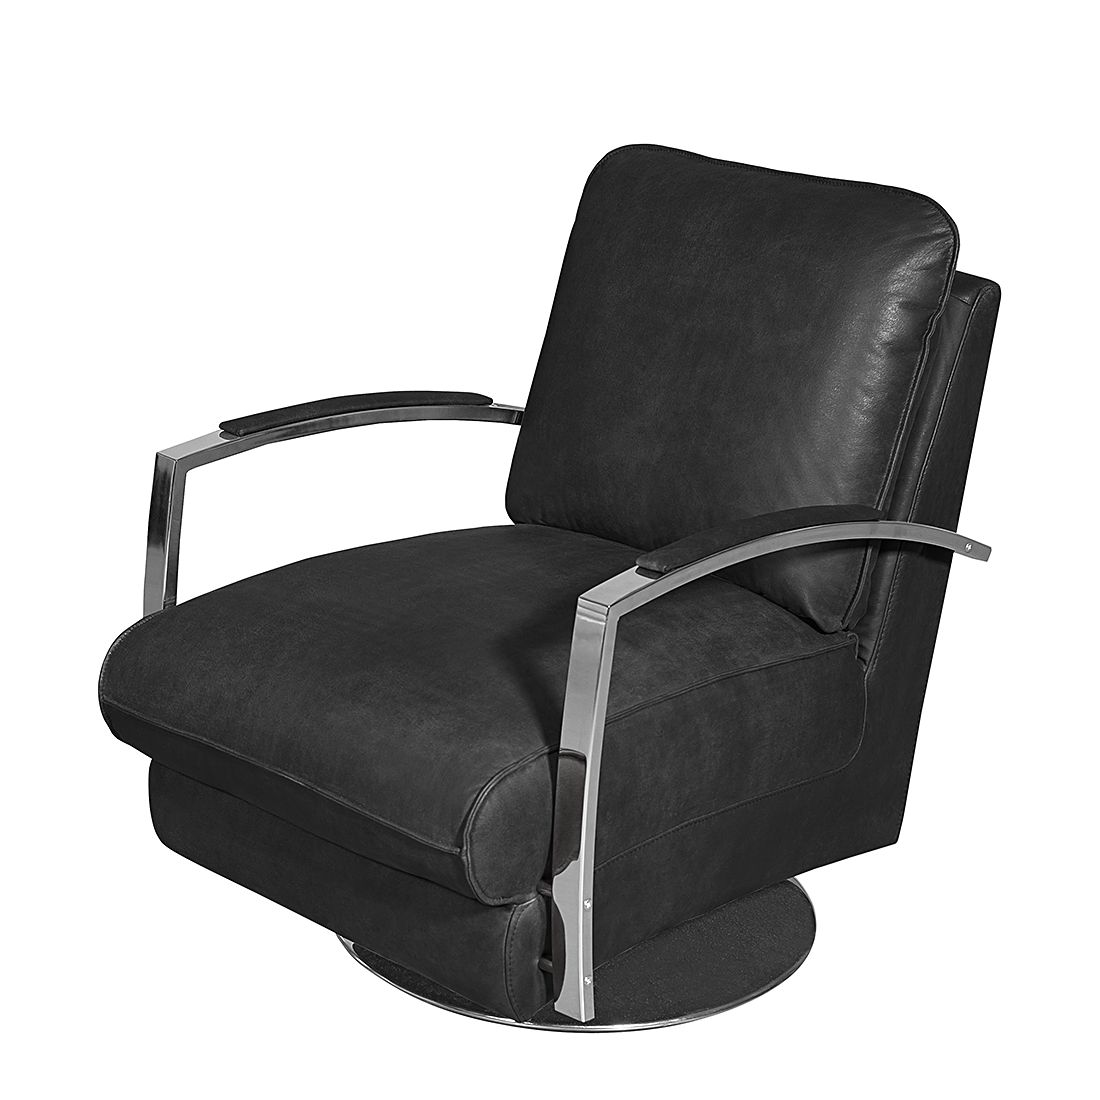 Fauteuil Marques II - Cuir véritable - Noir, Red Living